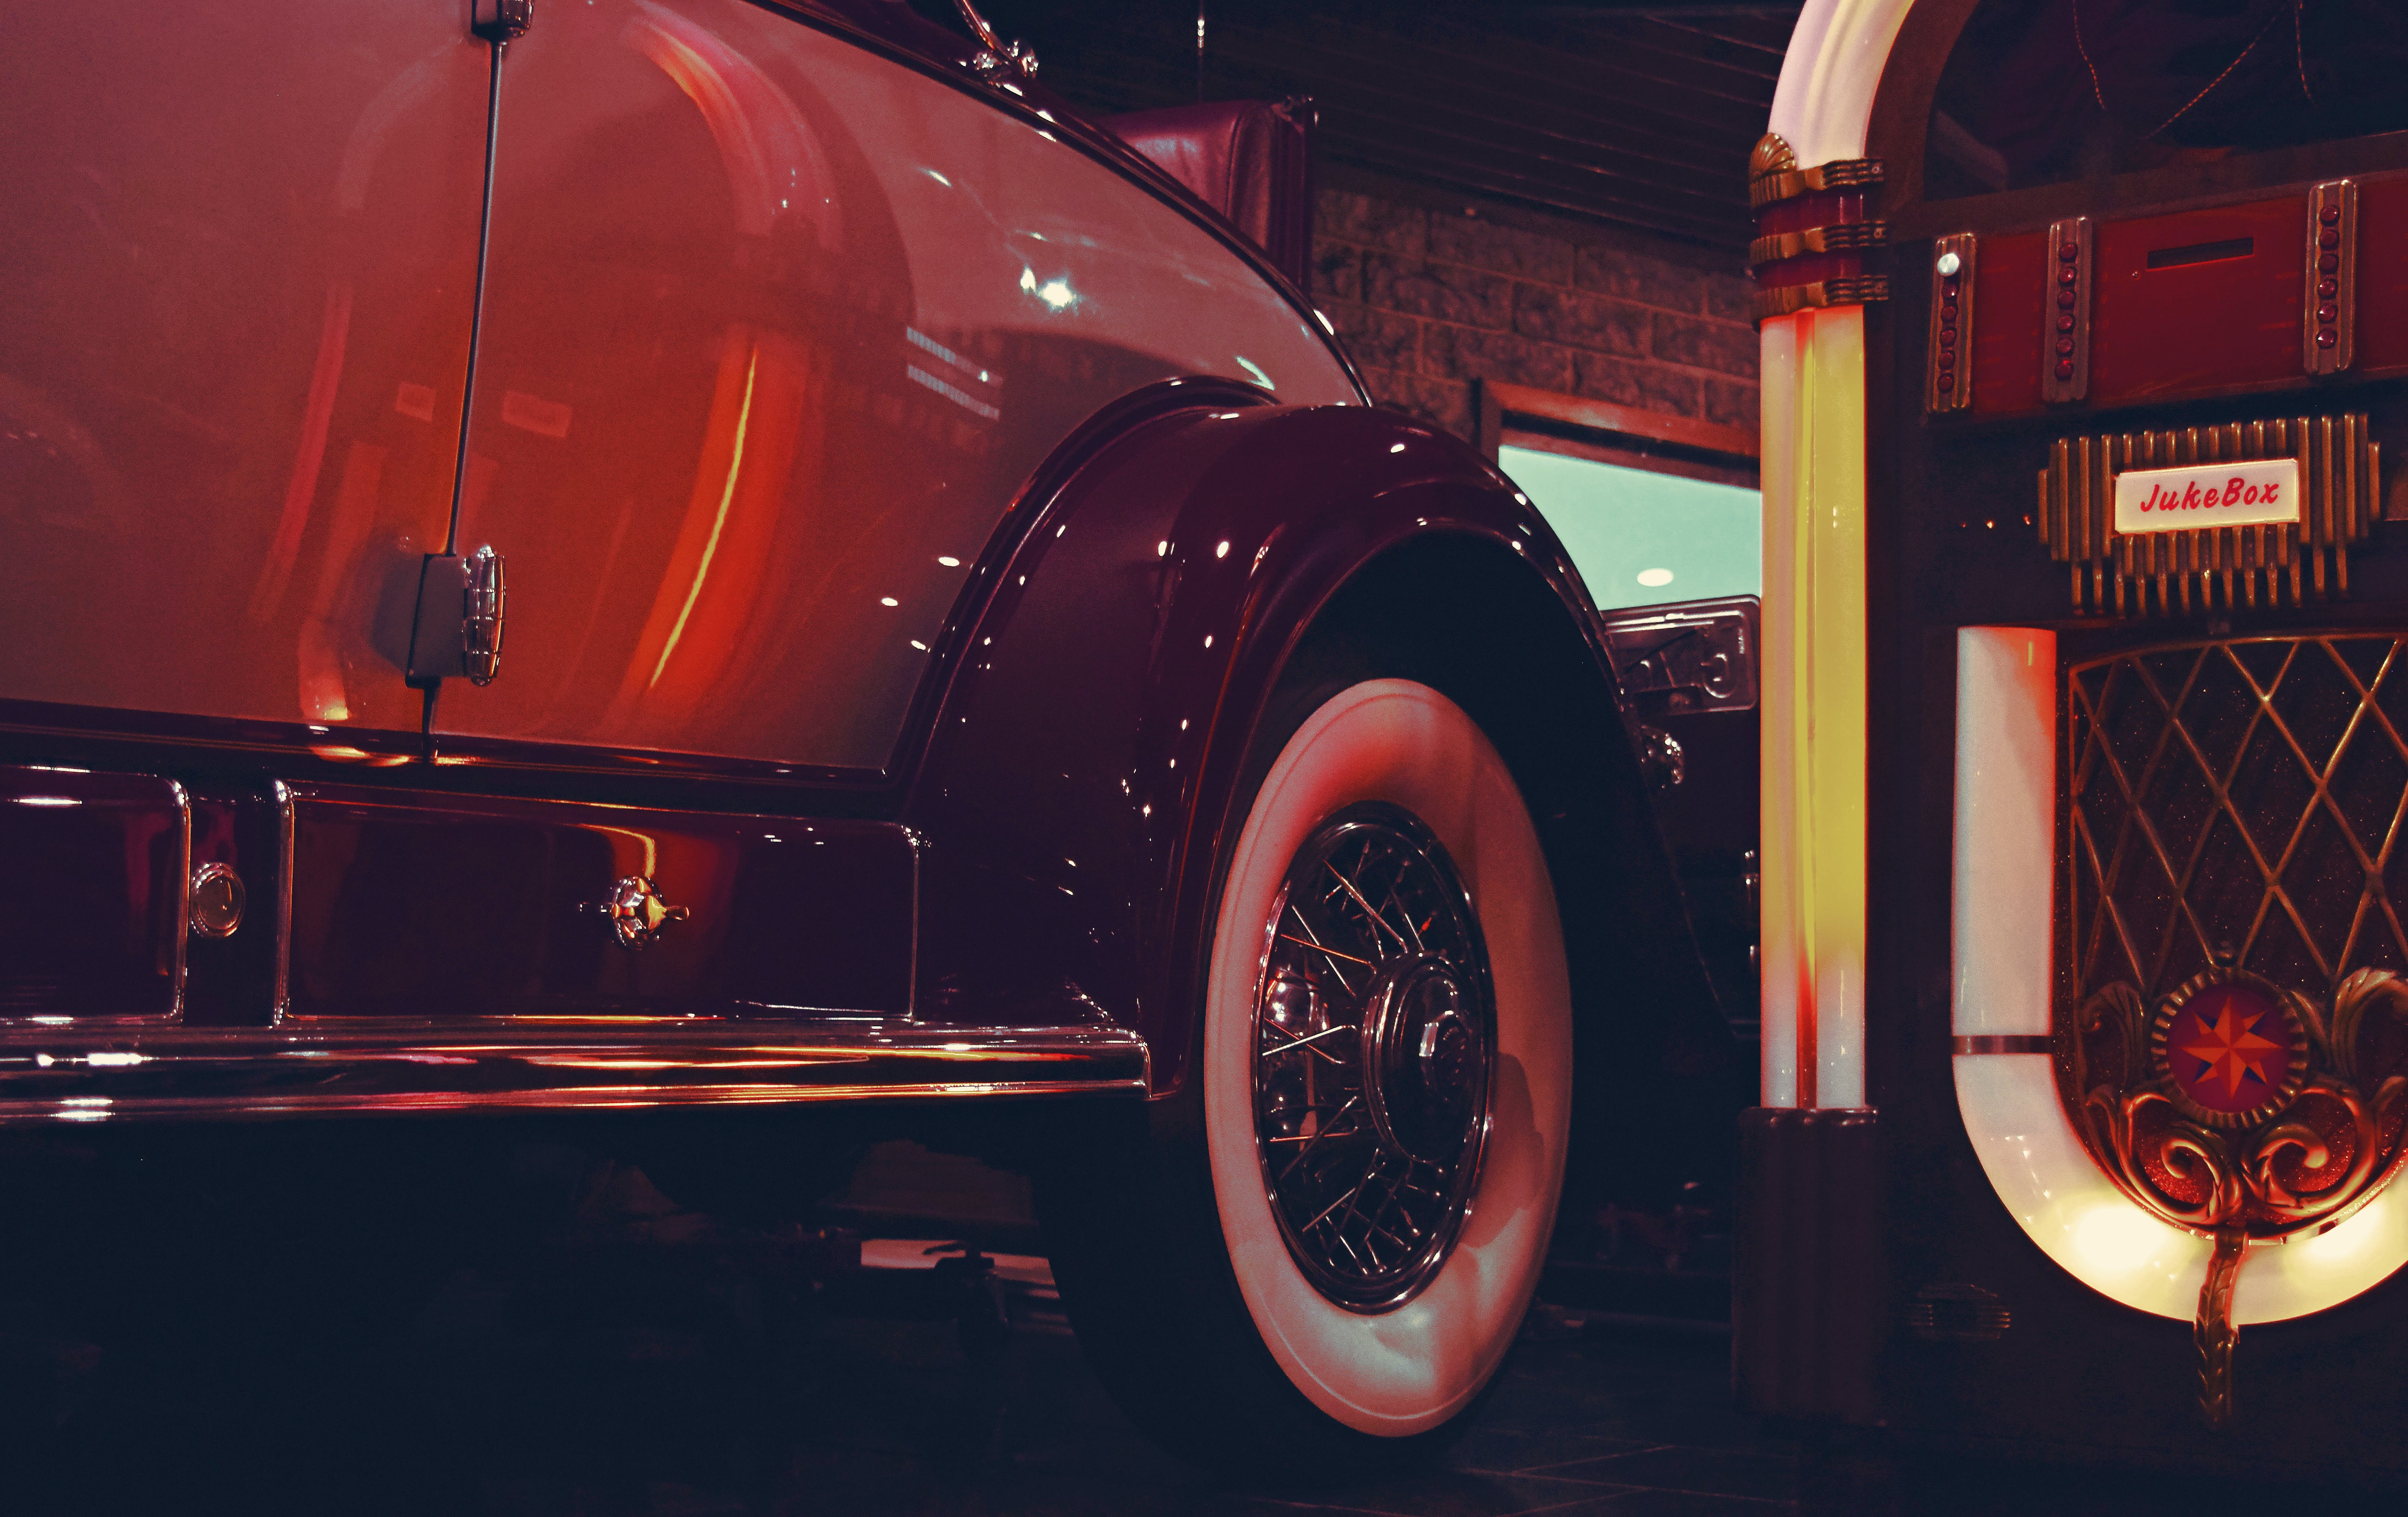 Lighted Jukebox Beside White and Brown Car